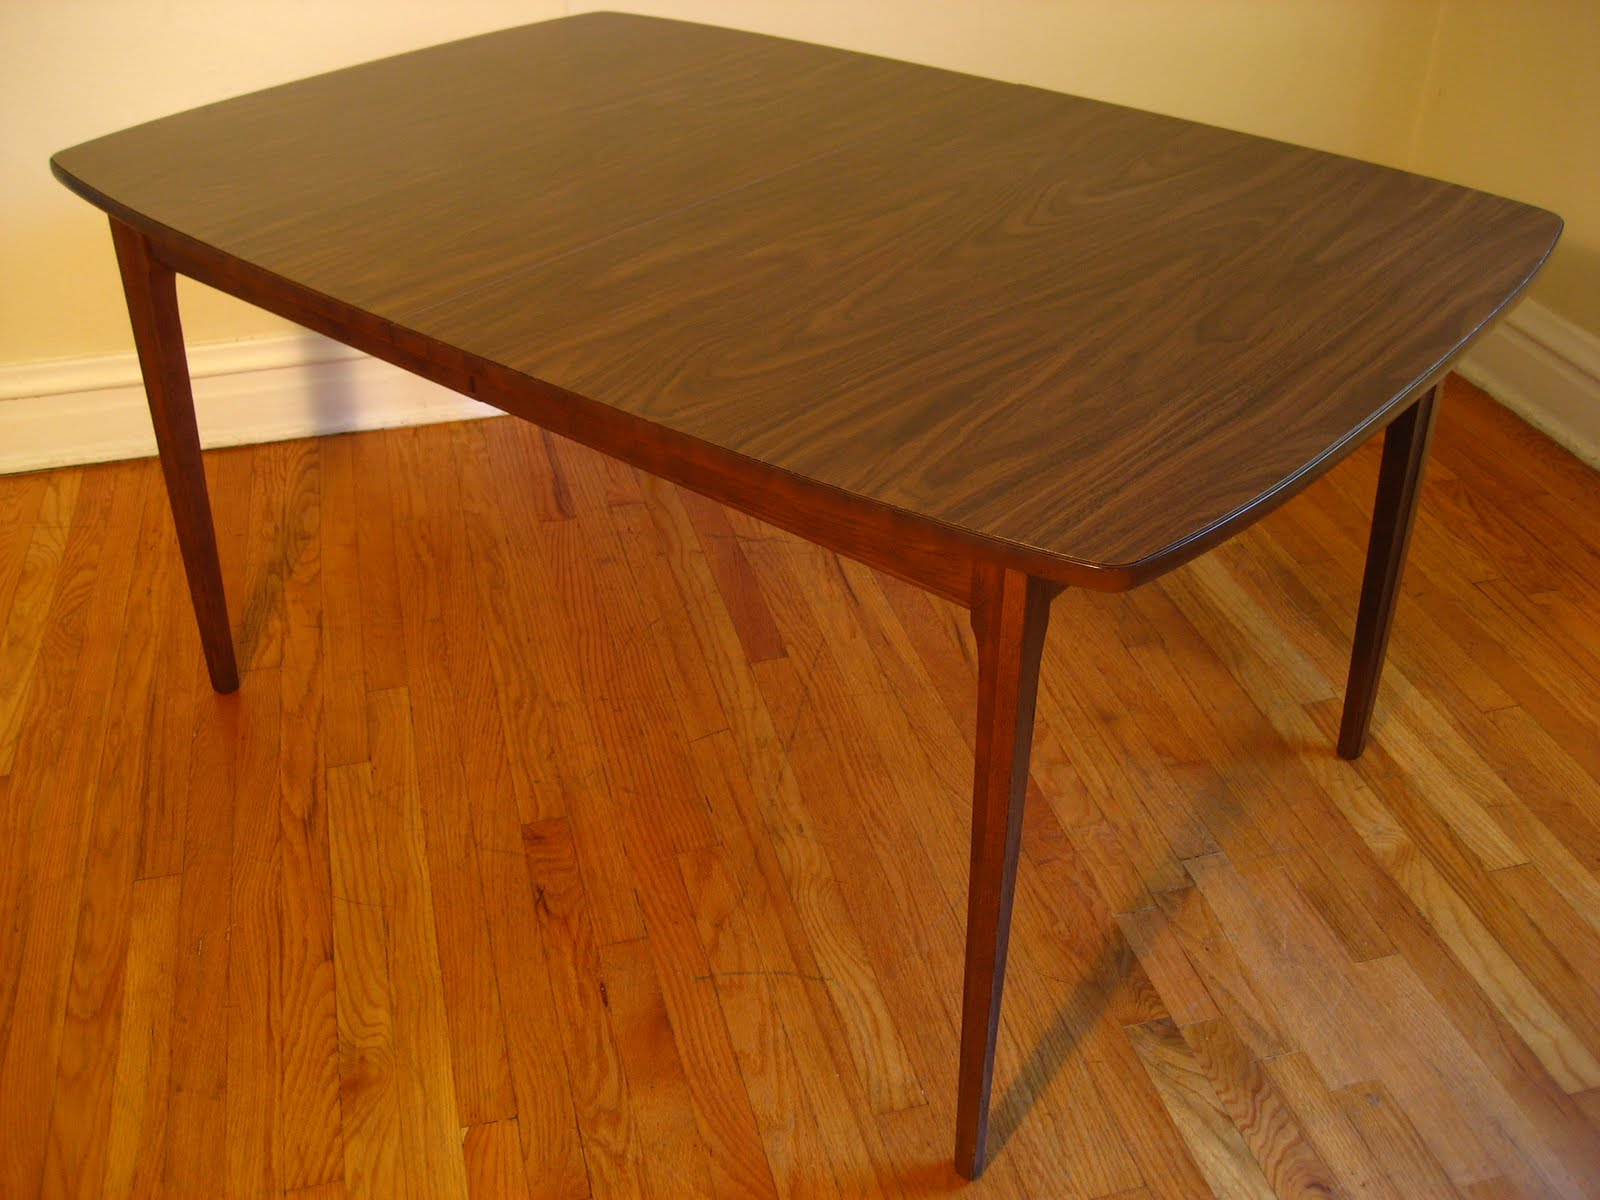 mcm dining table laminate kitchen table MCM Dining Table Dark Walnut Formica top